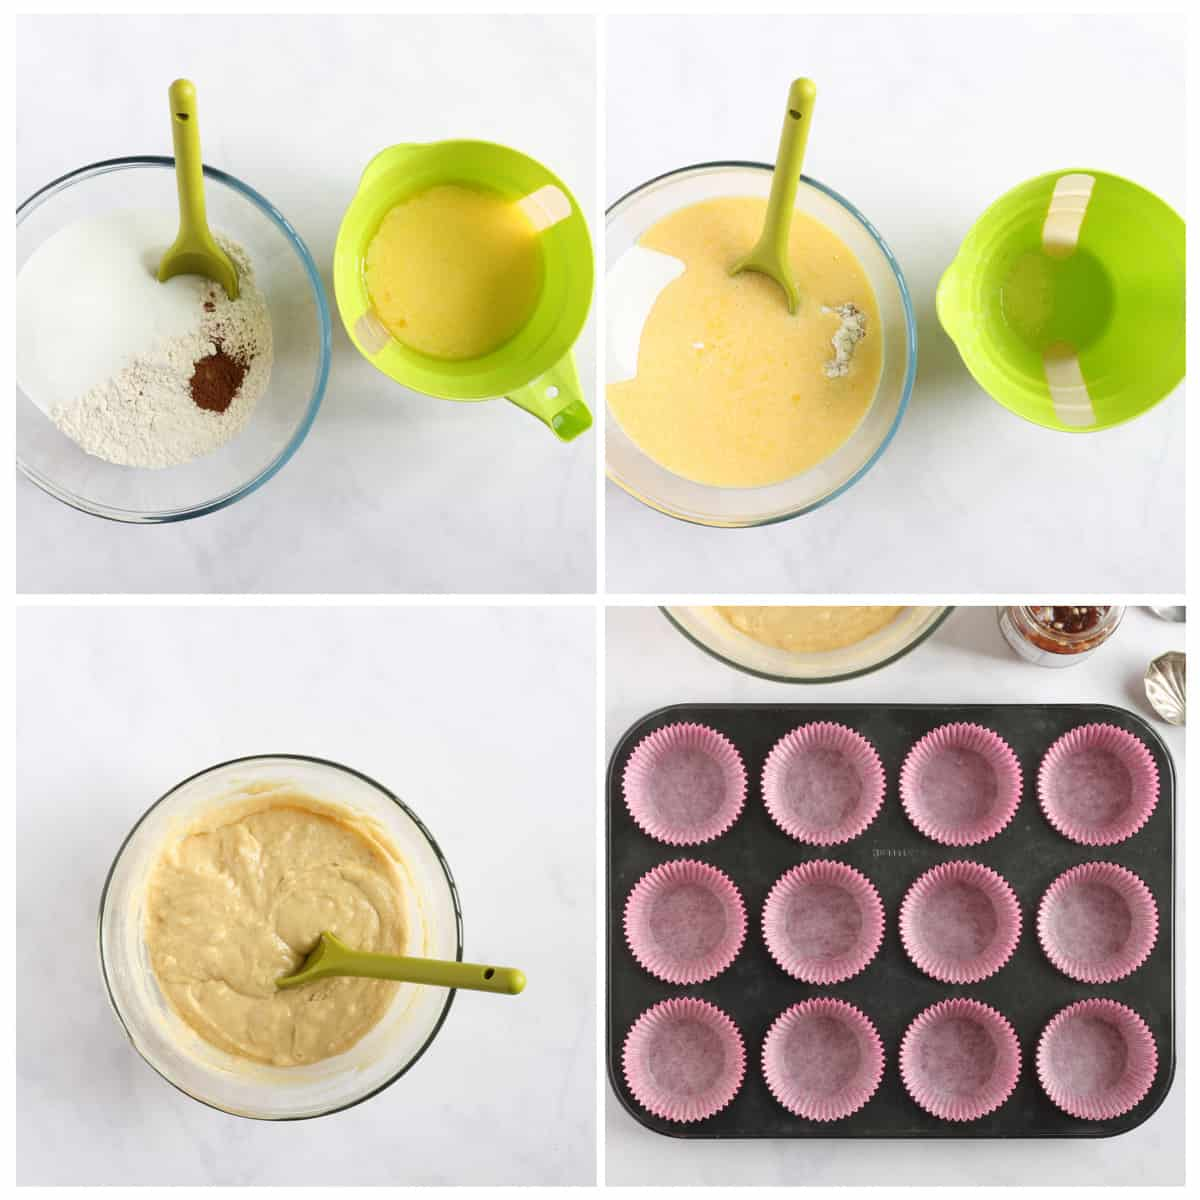 Step by step photo instructions collage for making mincemeat muffins part 1.